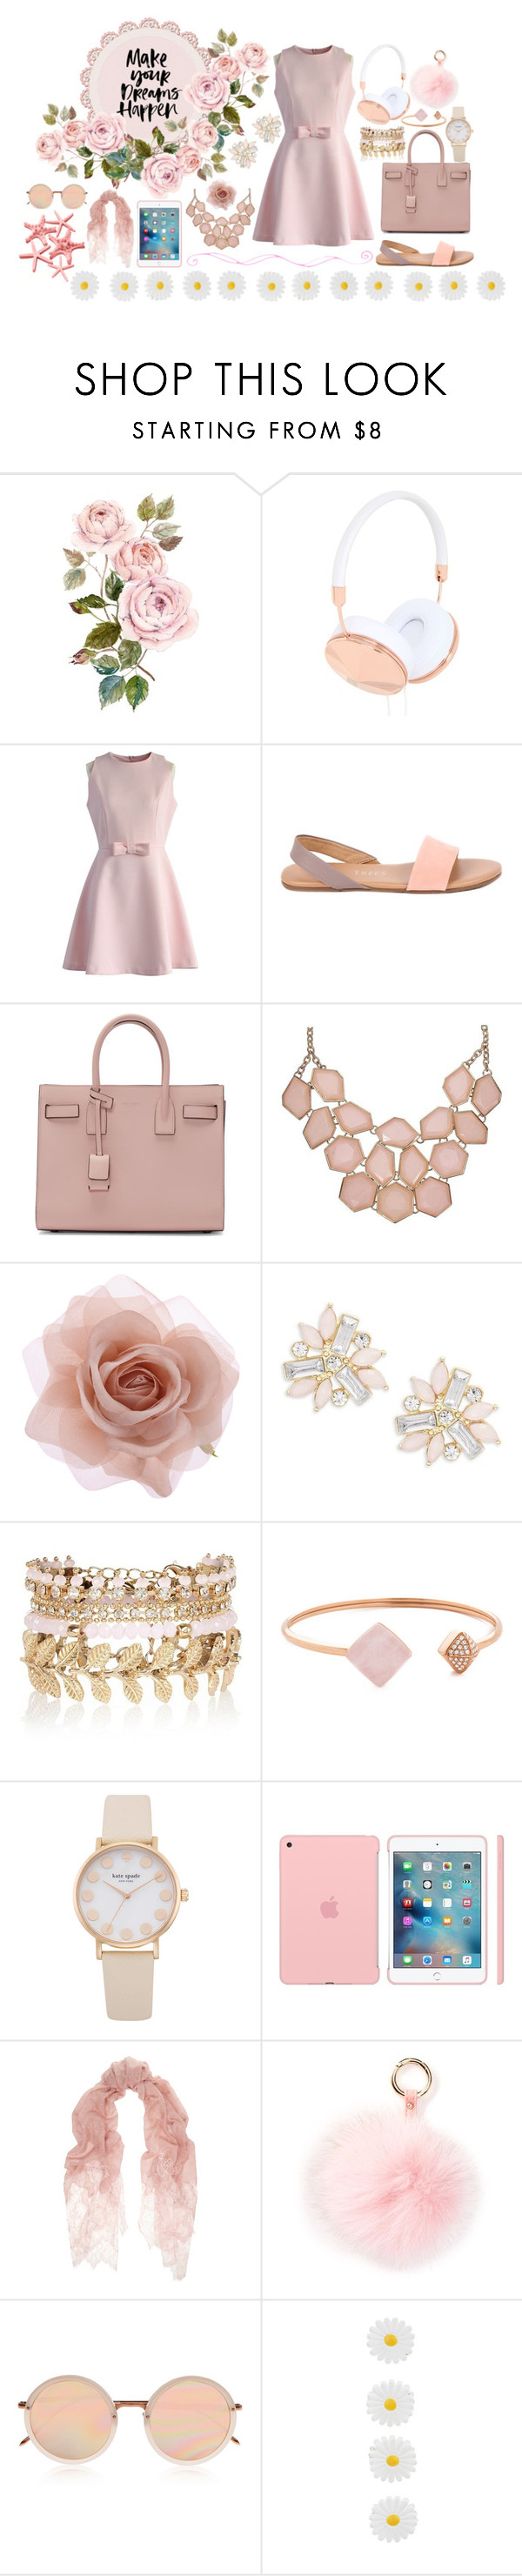 """The dreamer"" by sillytan ❤ liked on Polyvore featuring мода, Frends, Chicwish, Tkees, Yves Saint Laurent, Accessorize, Cara, River Island, Michael Kors и Valentino"